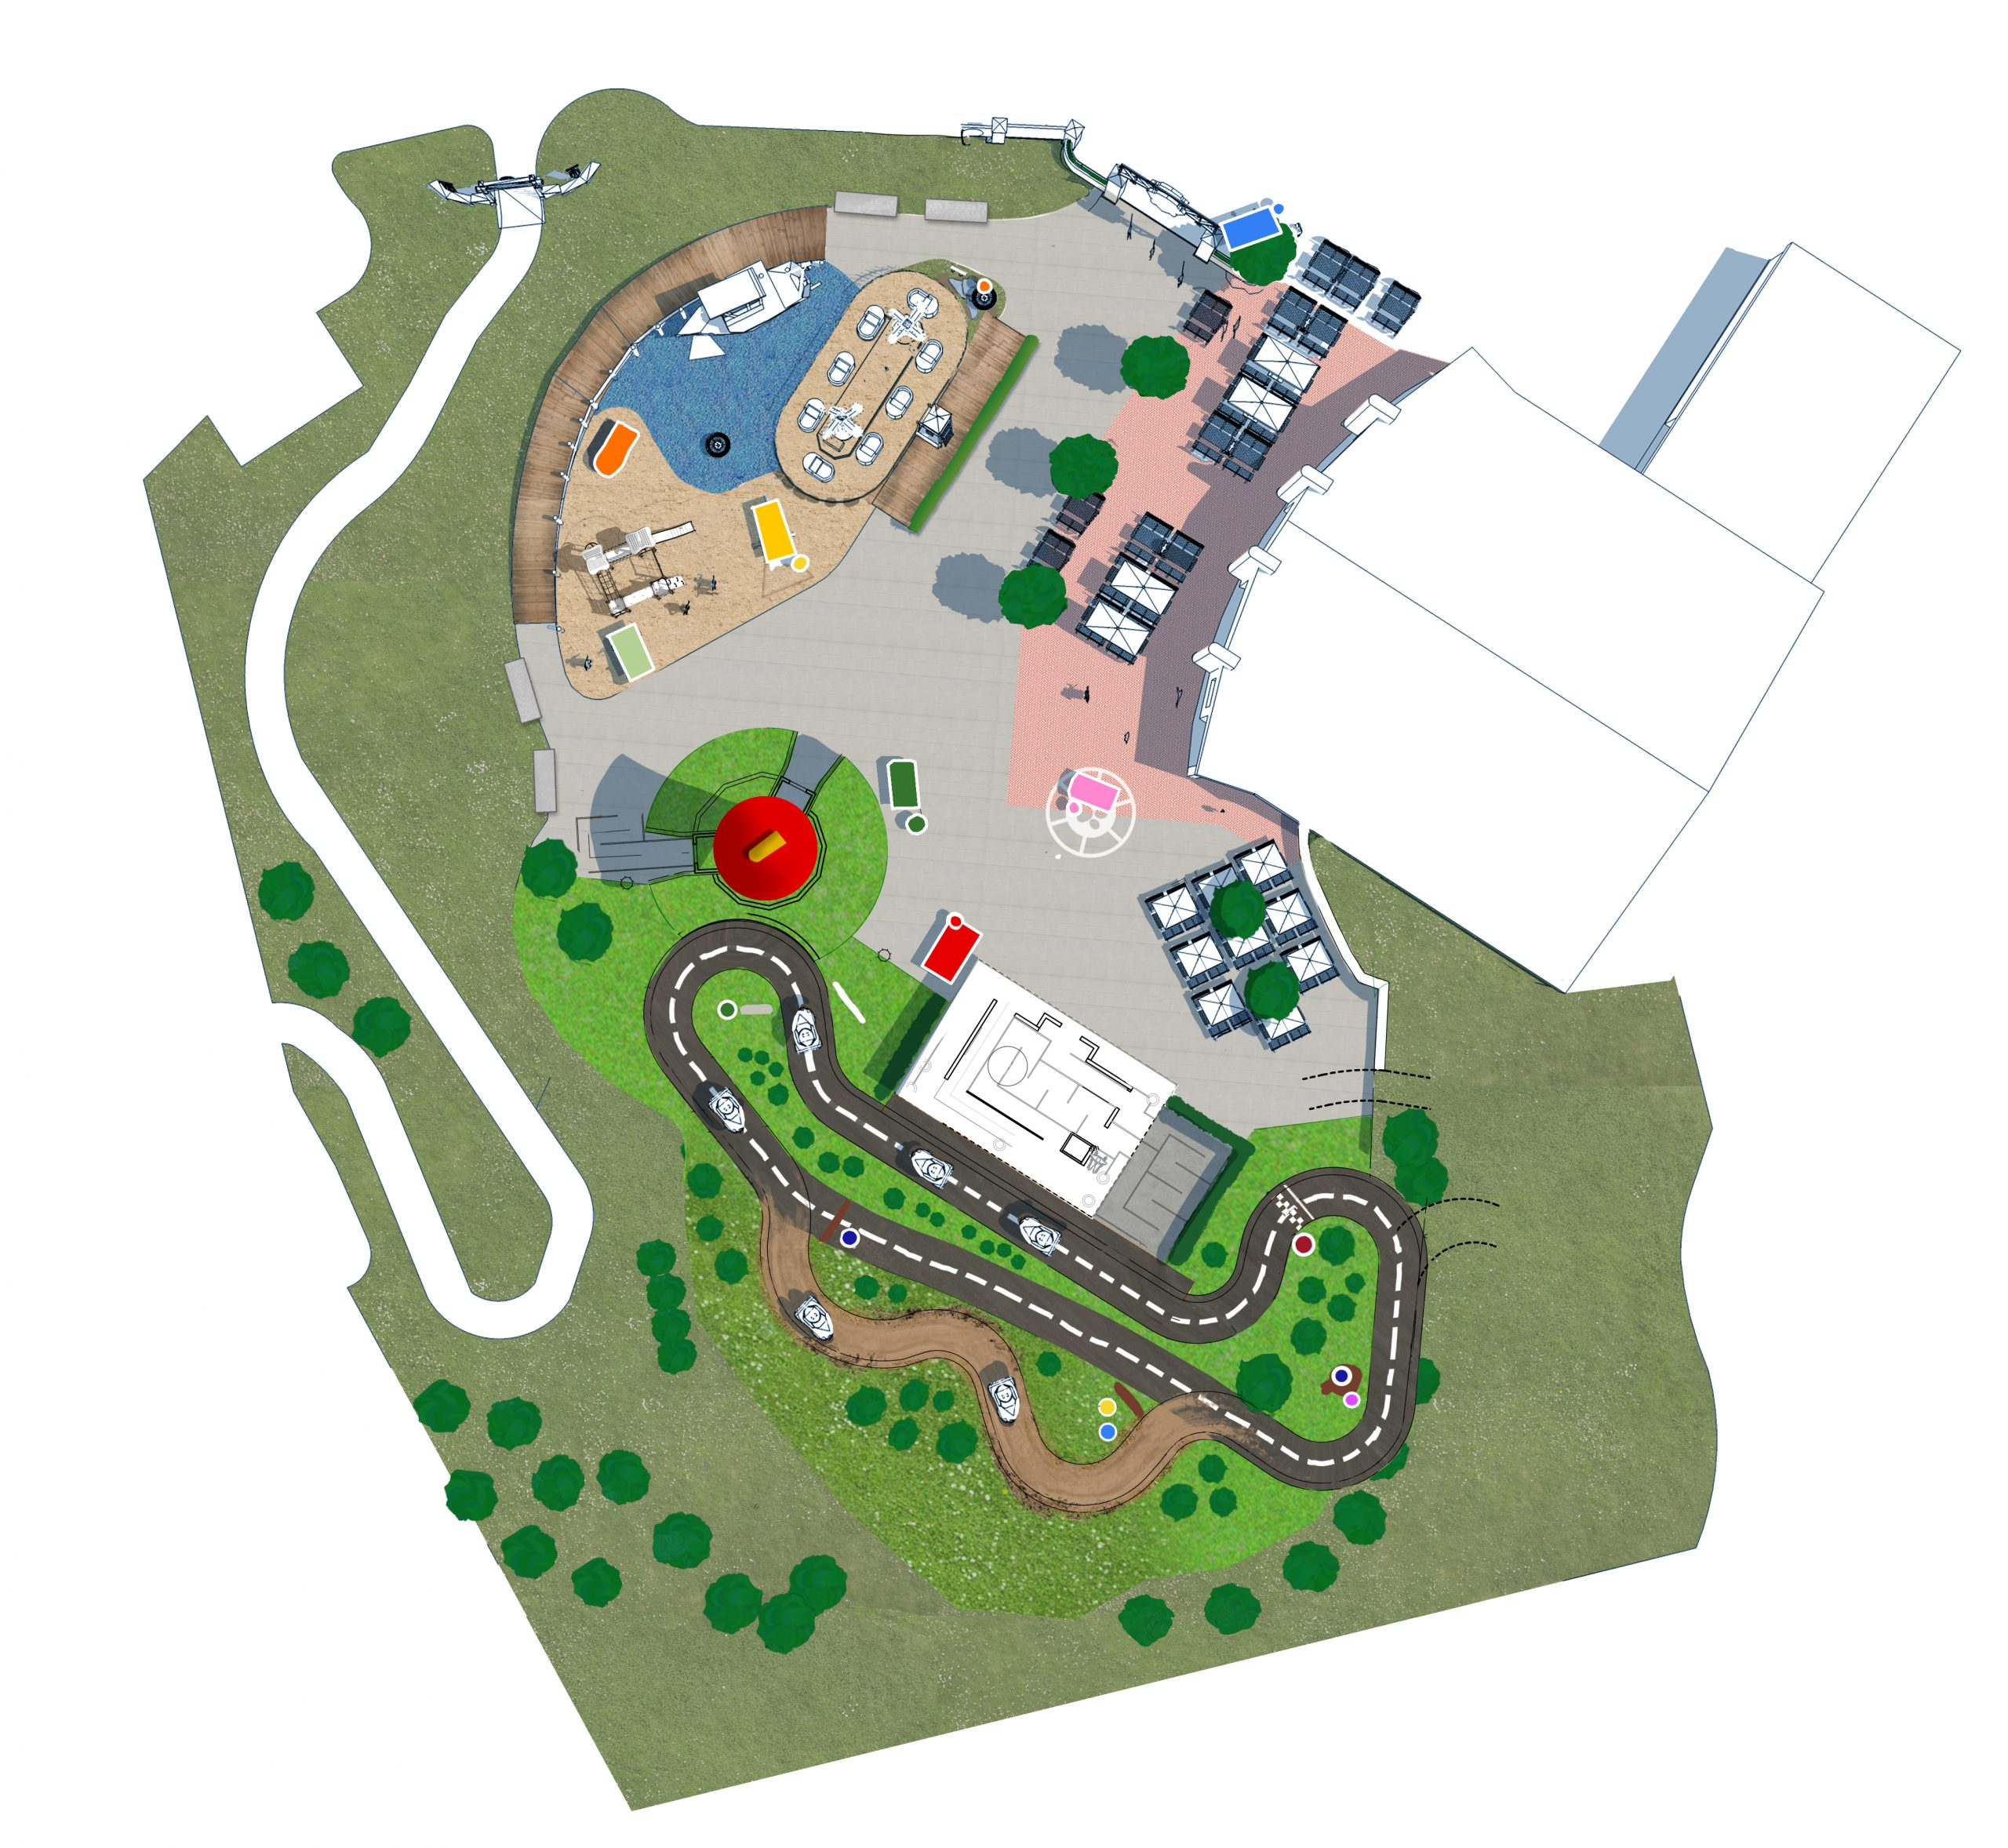 The lay-out of the Paw Patrol area at Movie Park Germany